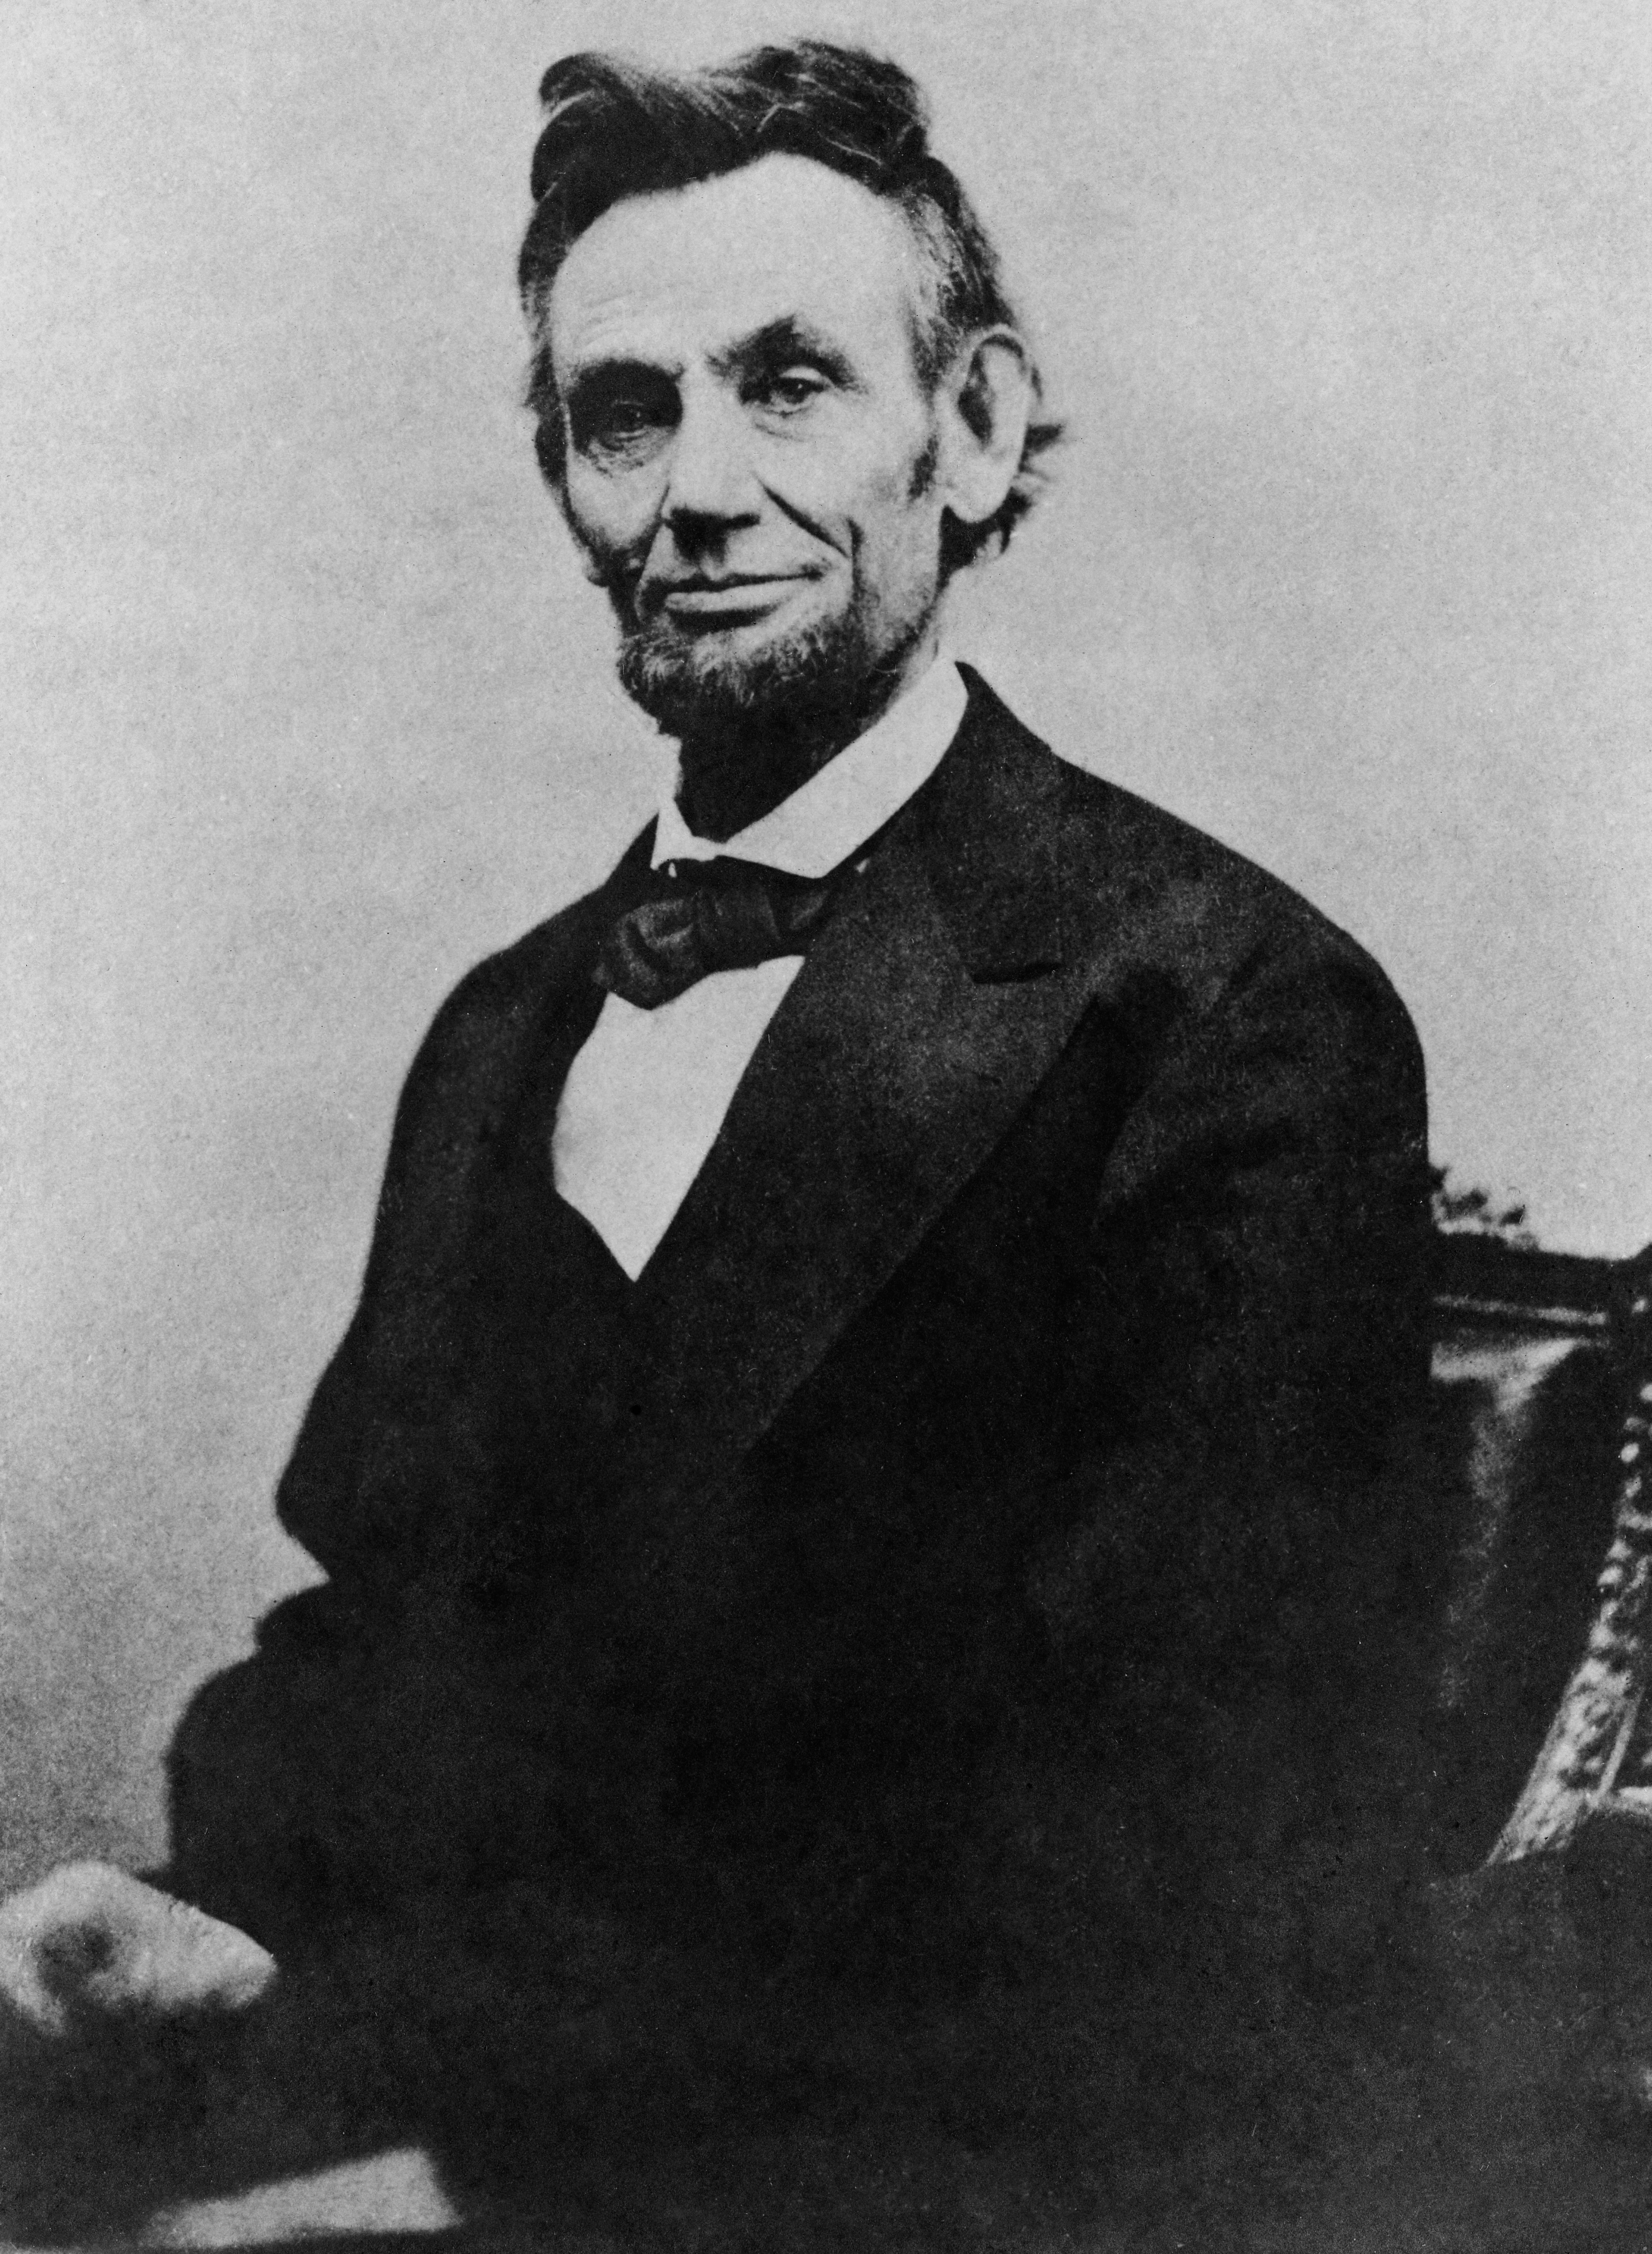 president abraham lincoln Abraham lincoln's childhood was a rough-and-tumble time when lincoln had  little chance to get an education, but he sought one anyway.